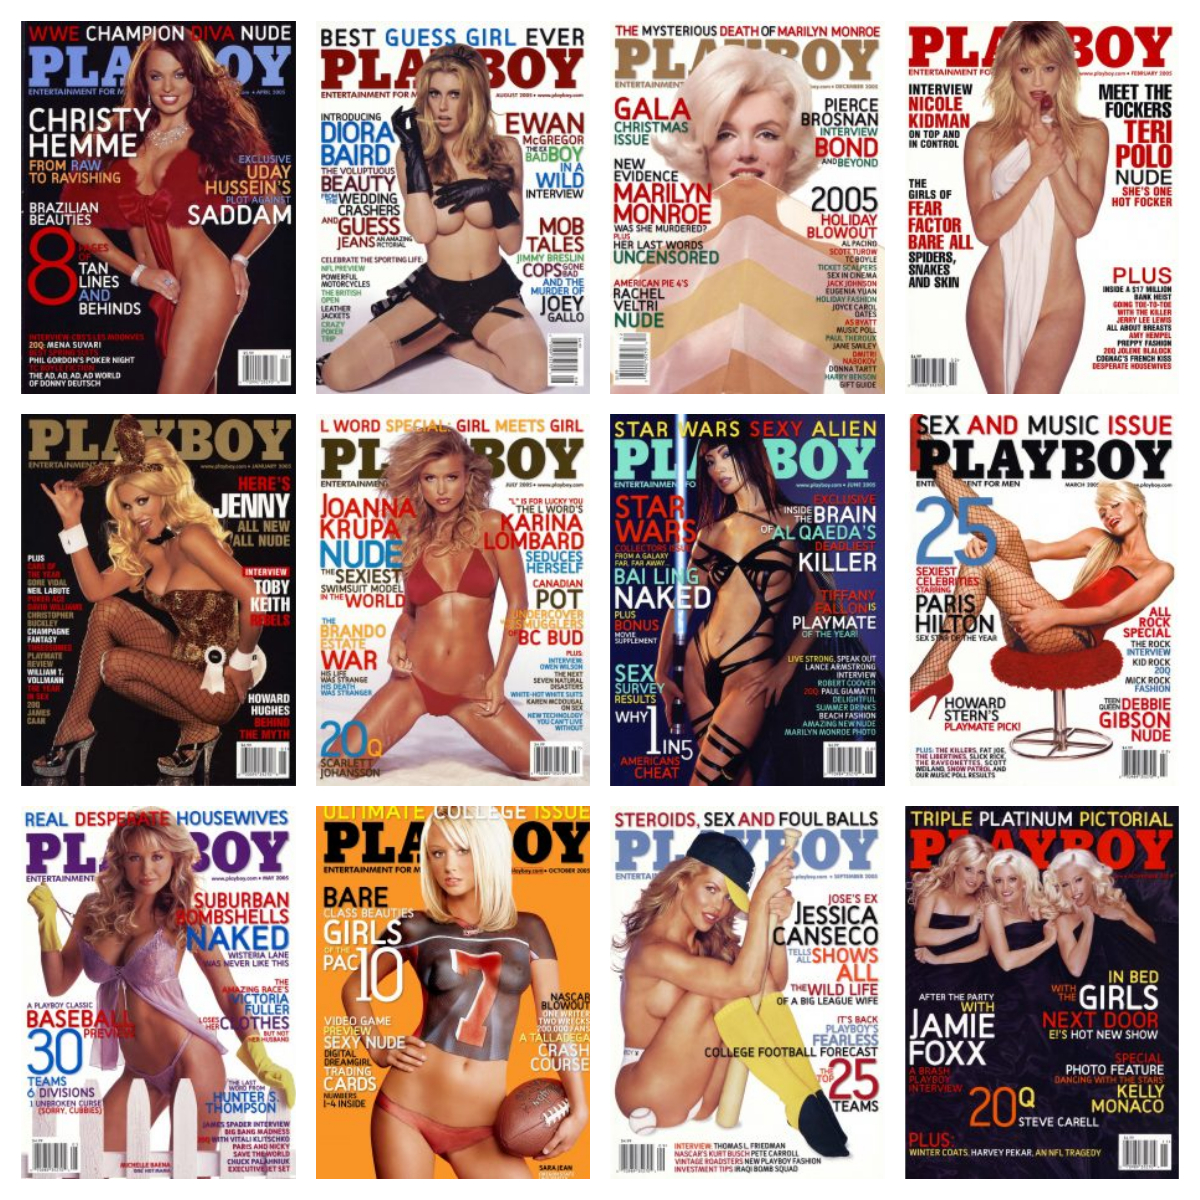 Playboy USA – Full Year 2005 Issues Collection